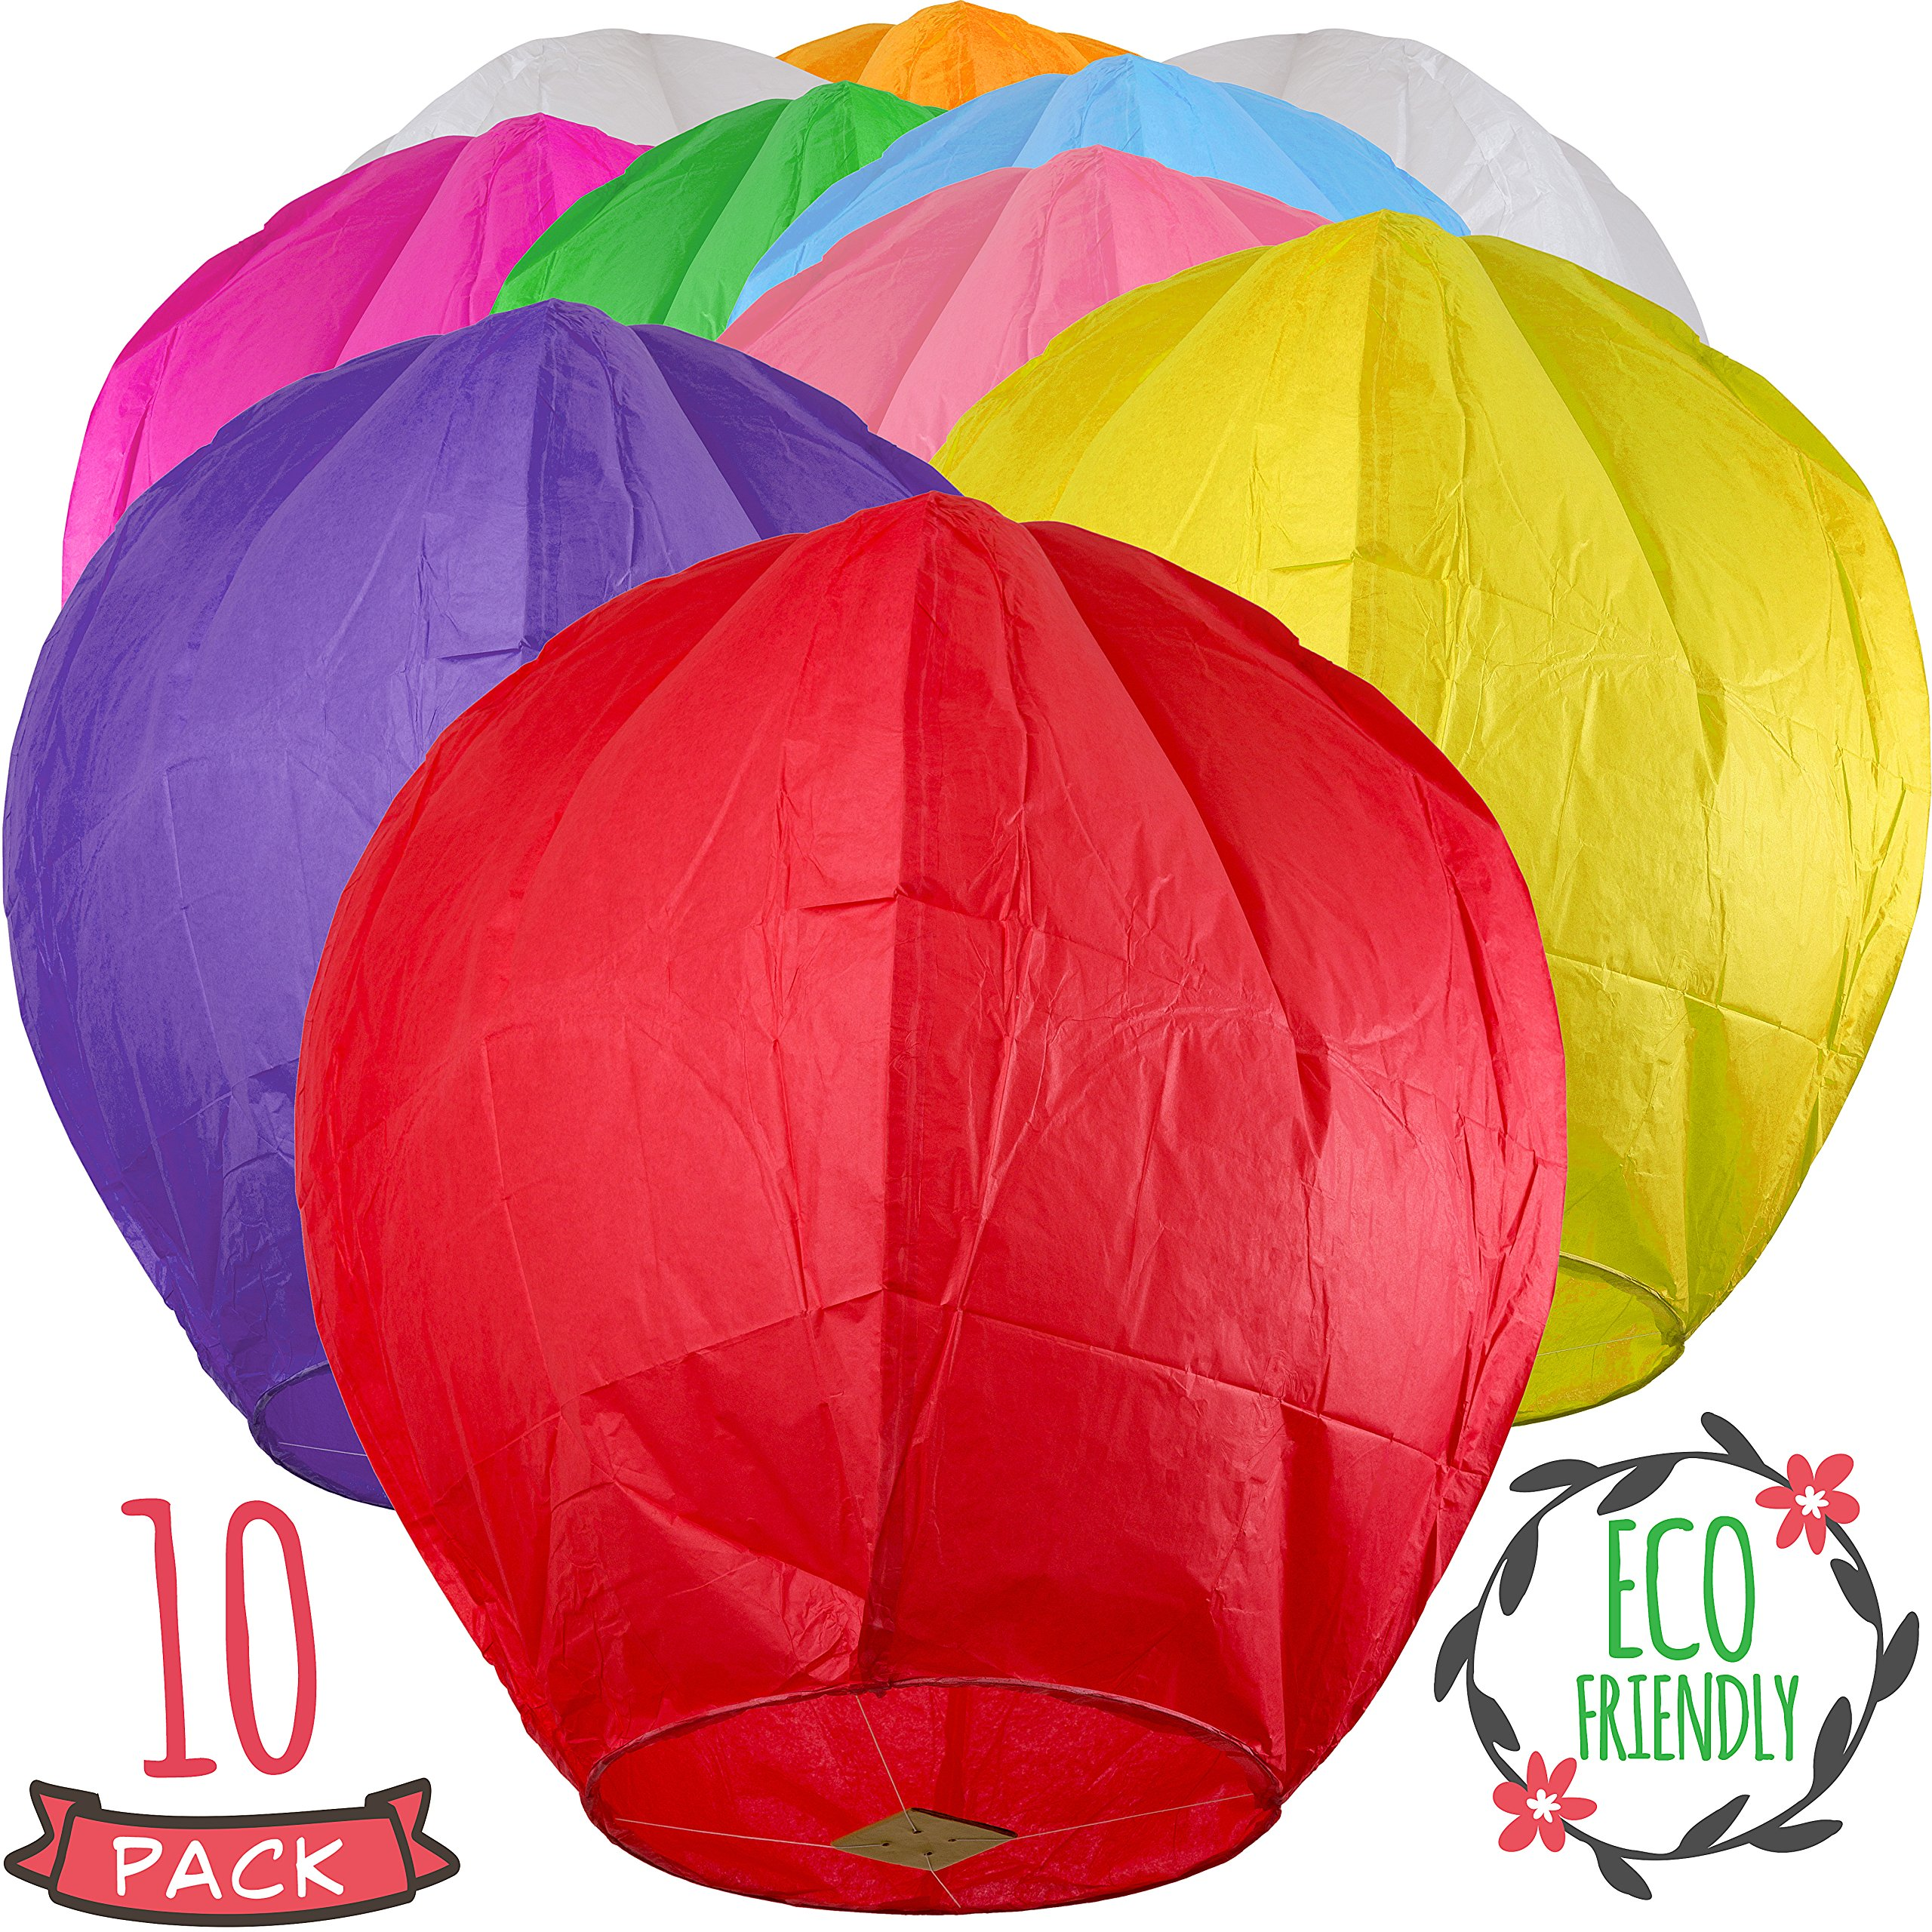 Chinese Lanterns 10-Pack Color, Sky High, Fully Assembled, Biodegradable, Sky Lanterns by Coral entertainments for Birthdays, Ceremonies, Weddings. Safe to use and Flame Retardant Paper by SKY HIGH